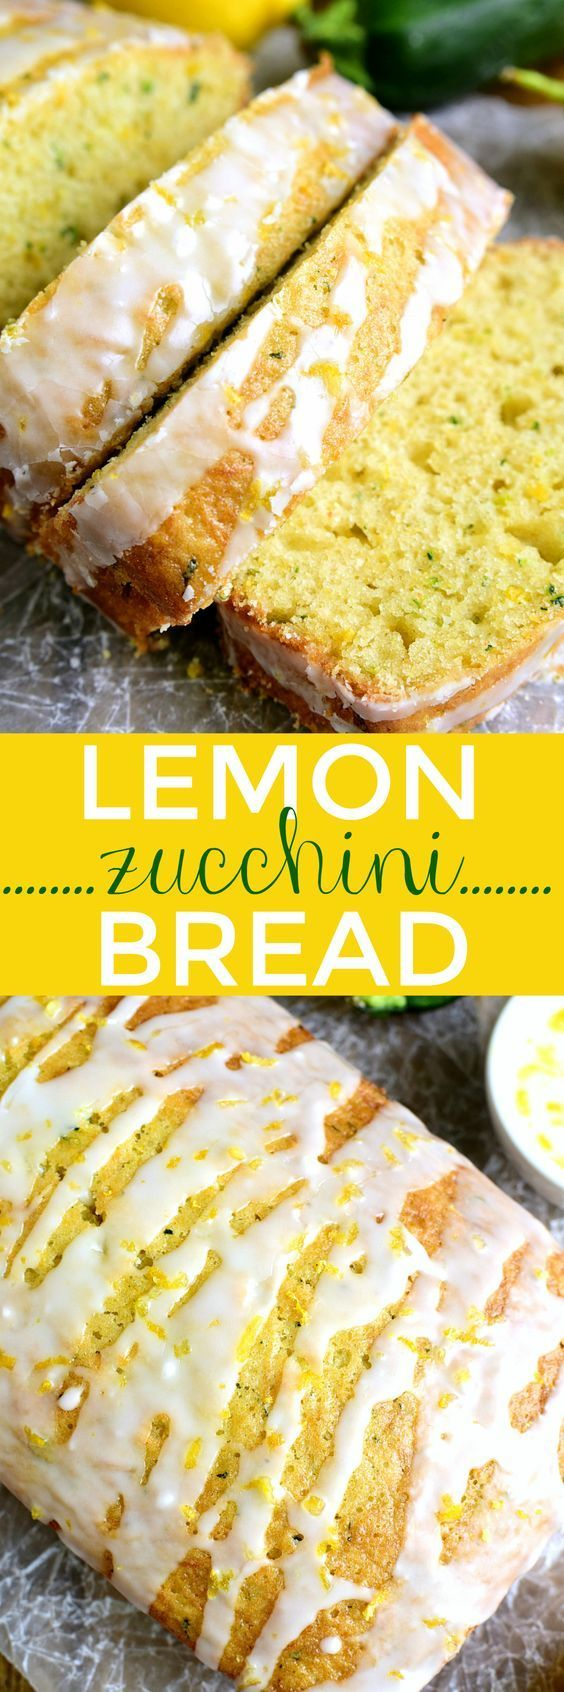 This Lemon Zucchini Bread combines two favorites in one delicious loaf of bread! Topped with a sweet lemony glaze, it's a great way to sneak in extra veggies and the BEST way to wake up!